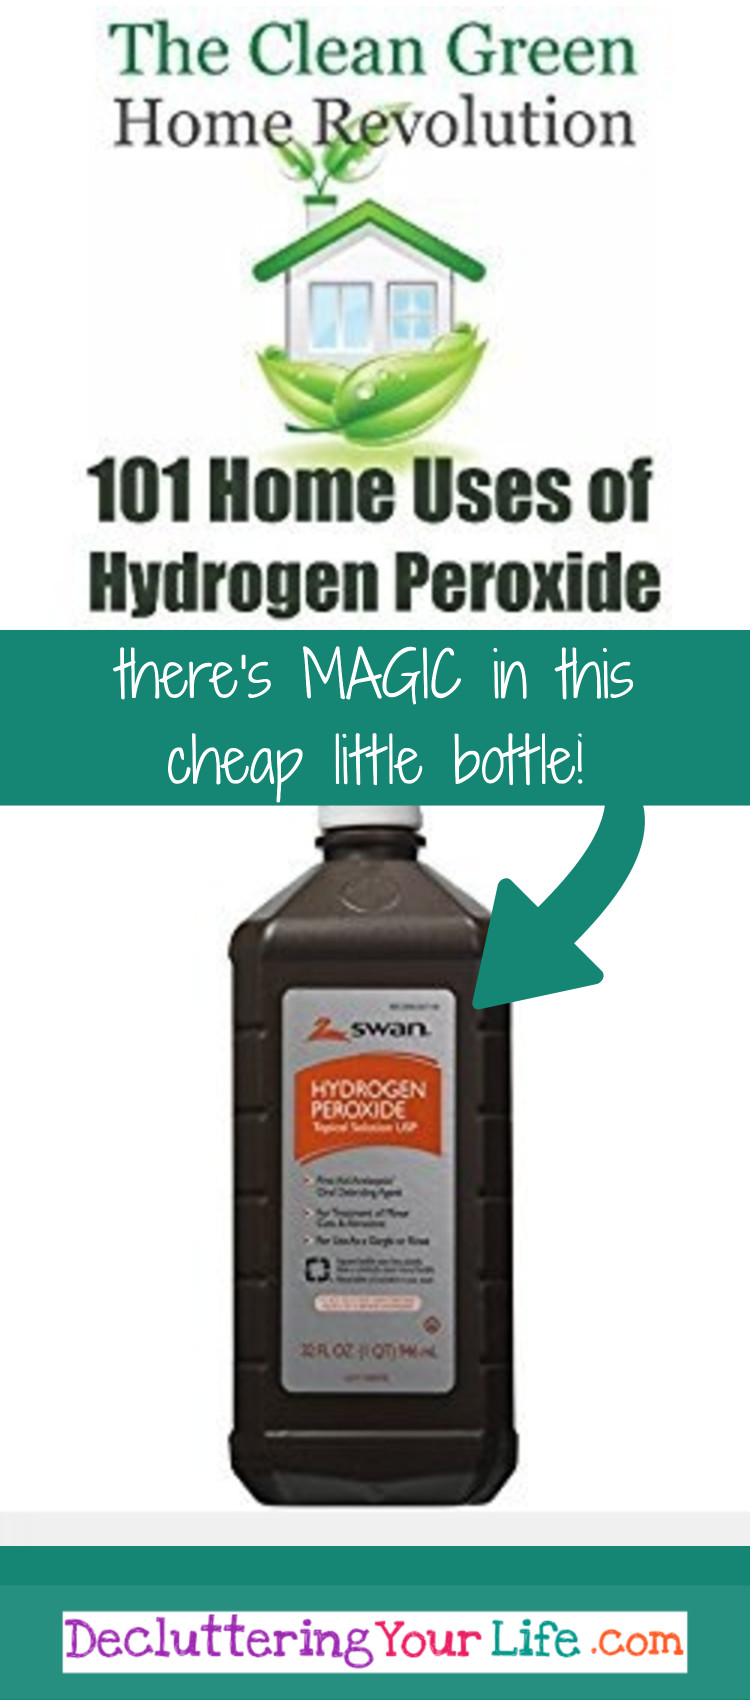 Hydrogen Peroxide Uses - How to use Hydrogen peroxide as a cleaner, sanitizer, disinfectant, and germ KILLER!